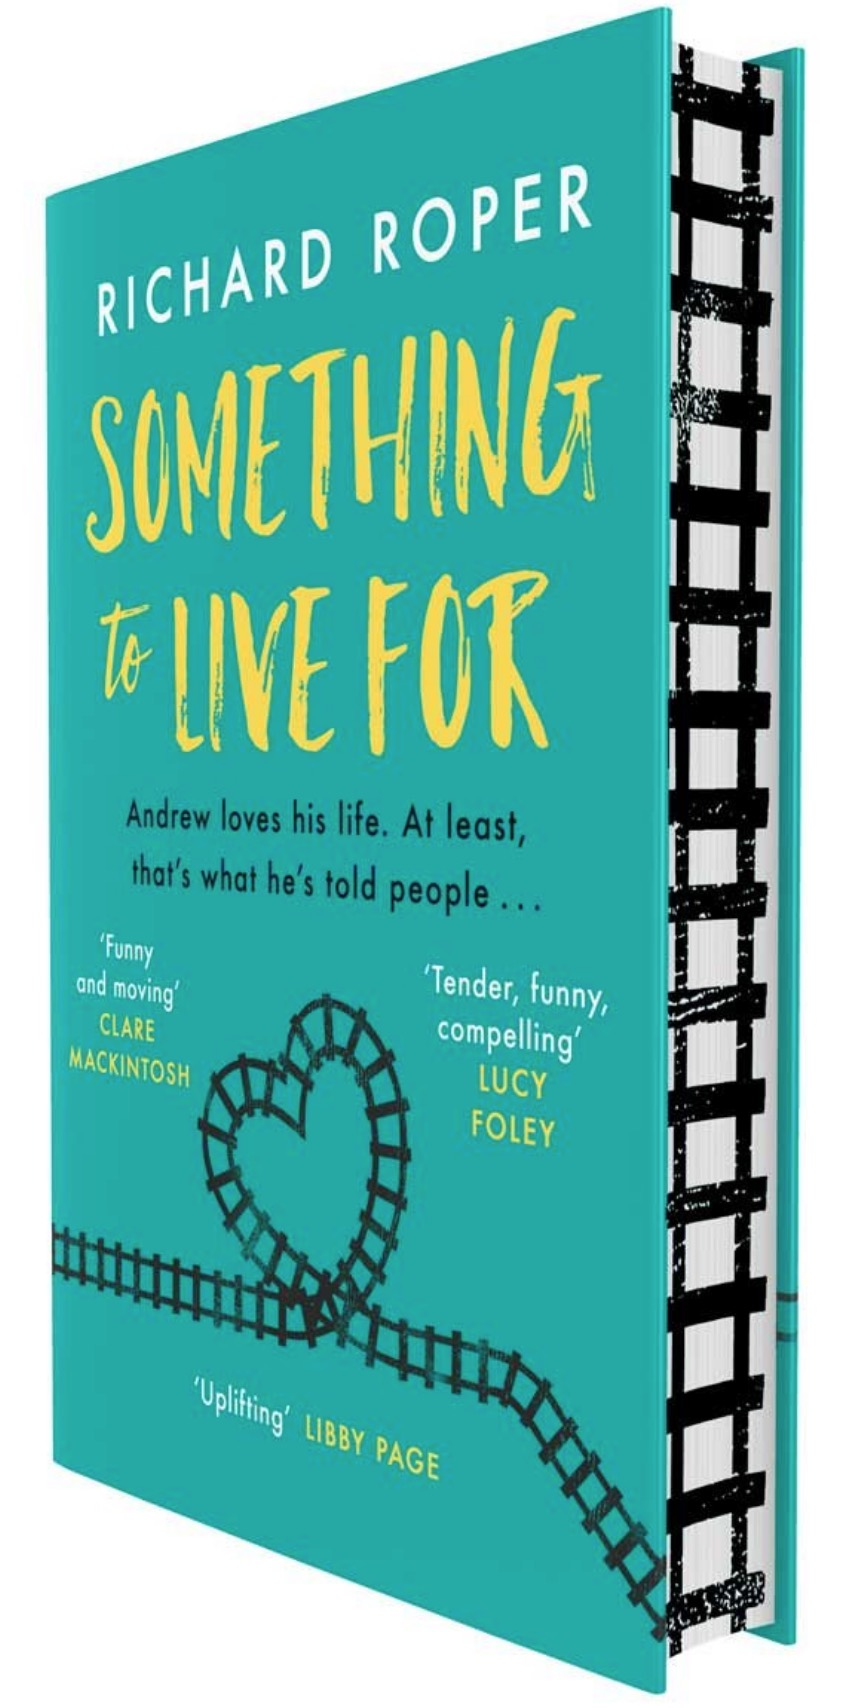 richard roper something to live for waterstones cover